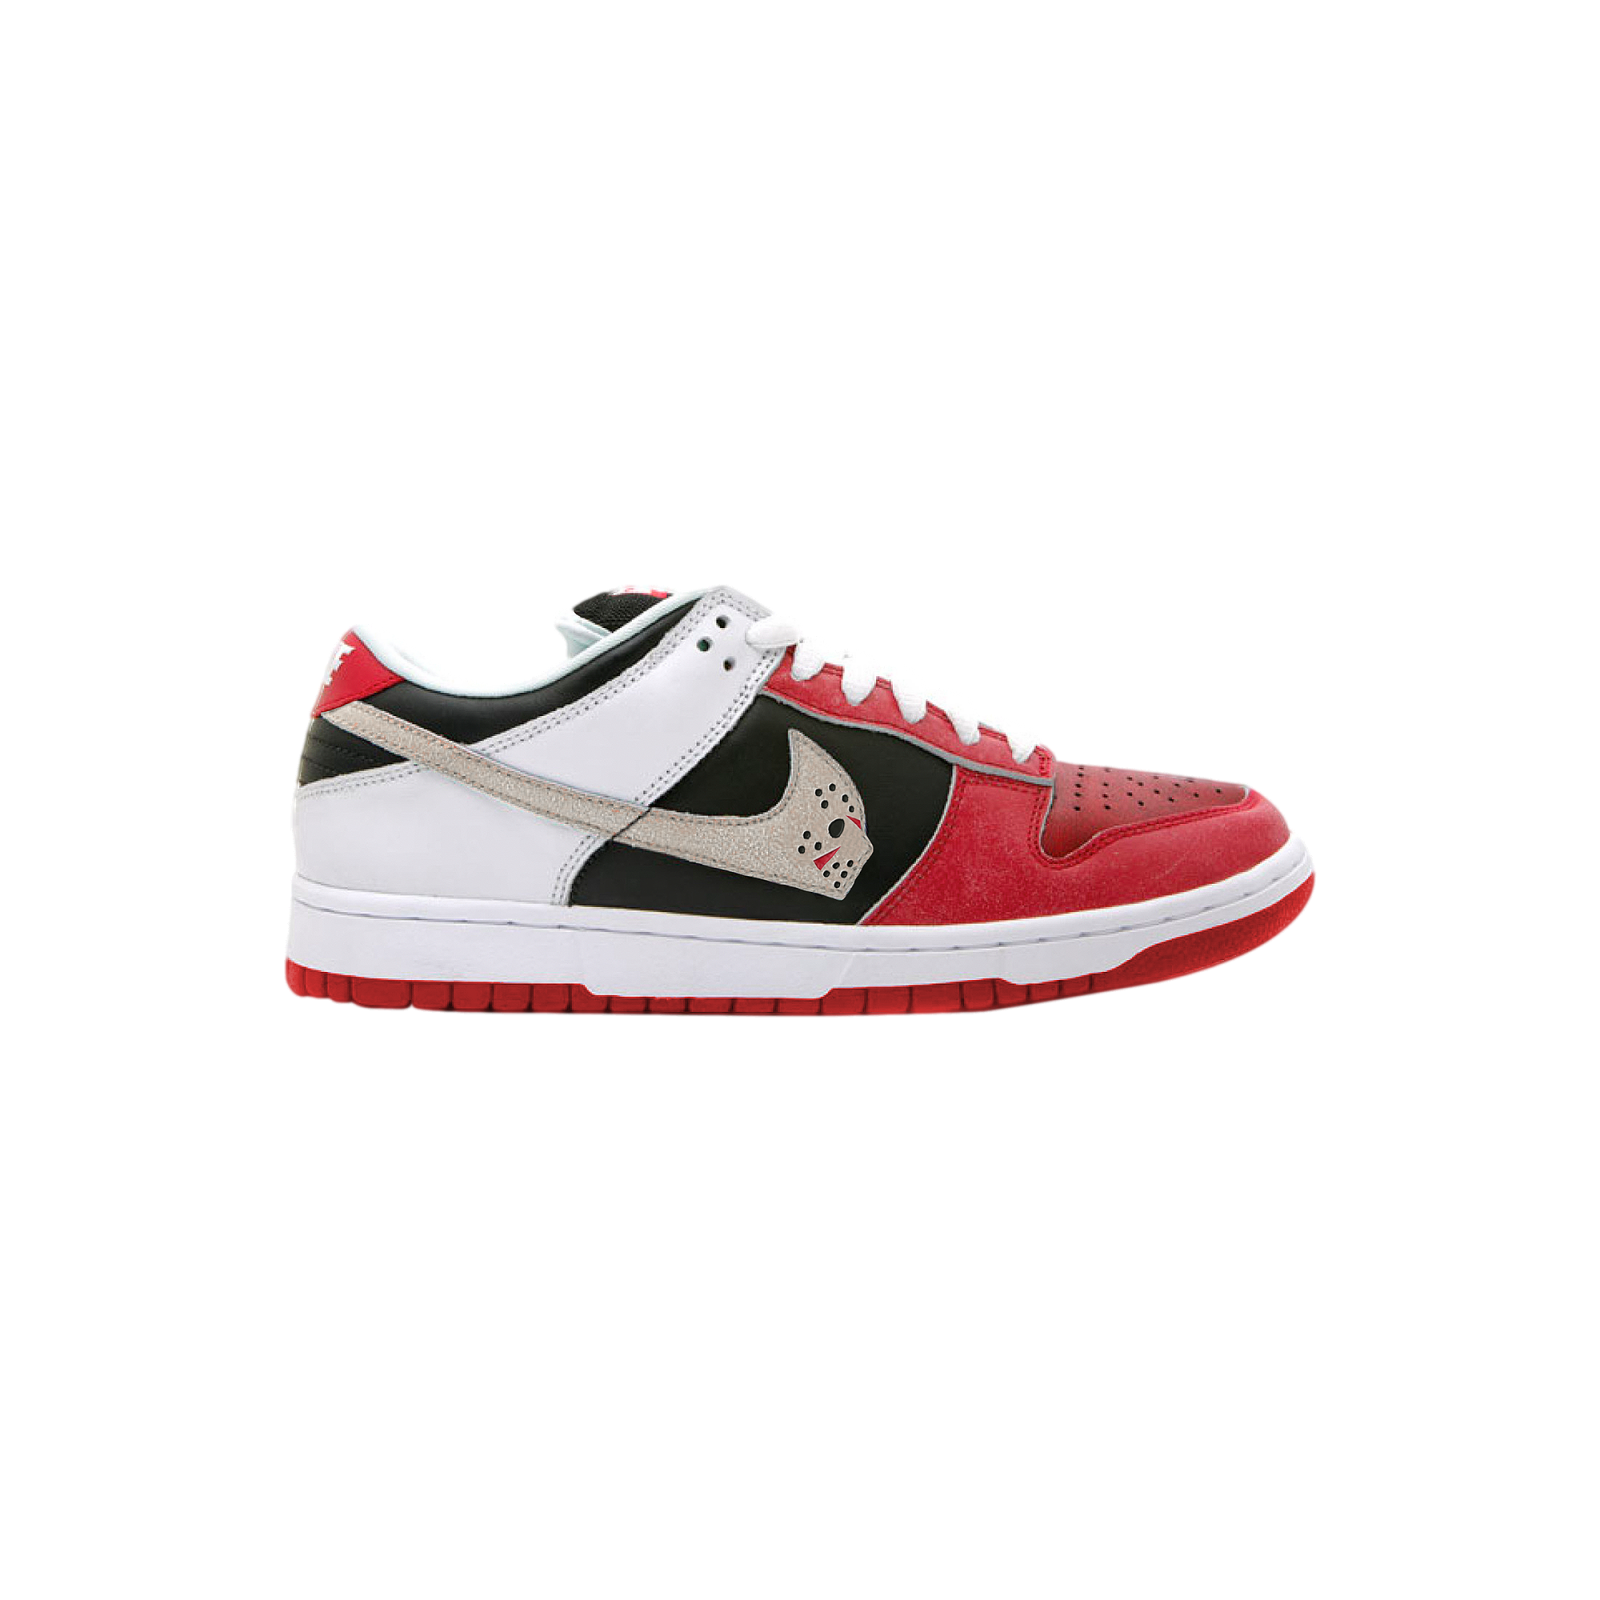 Jason-NikeSB-Dunk-Low.png